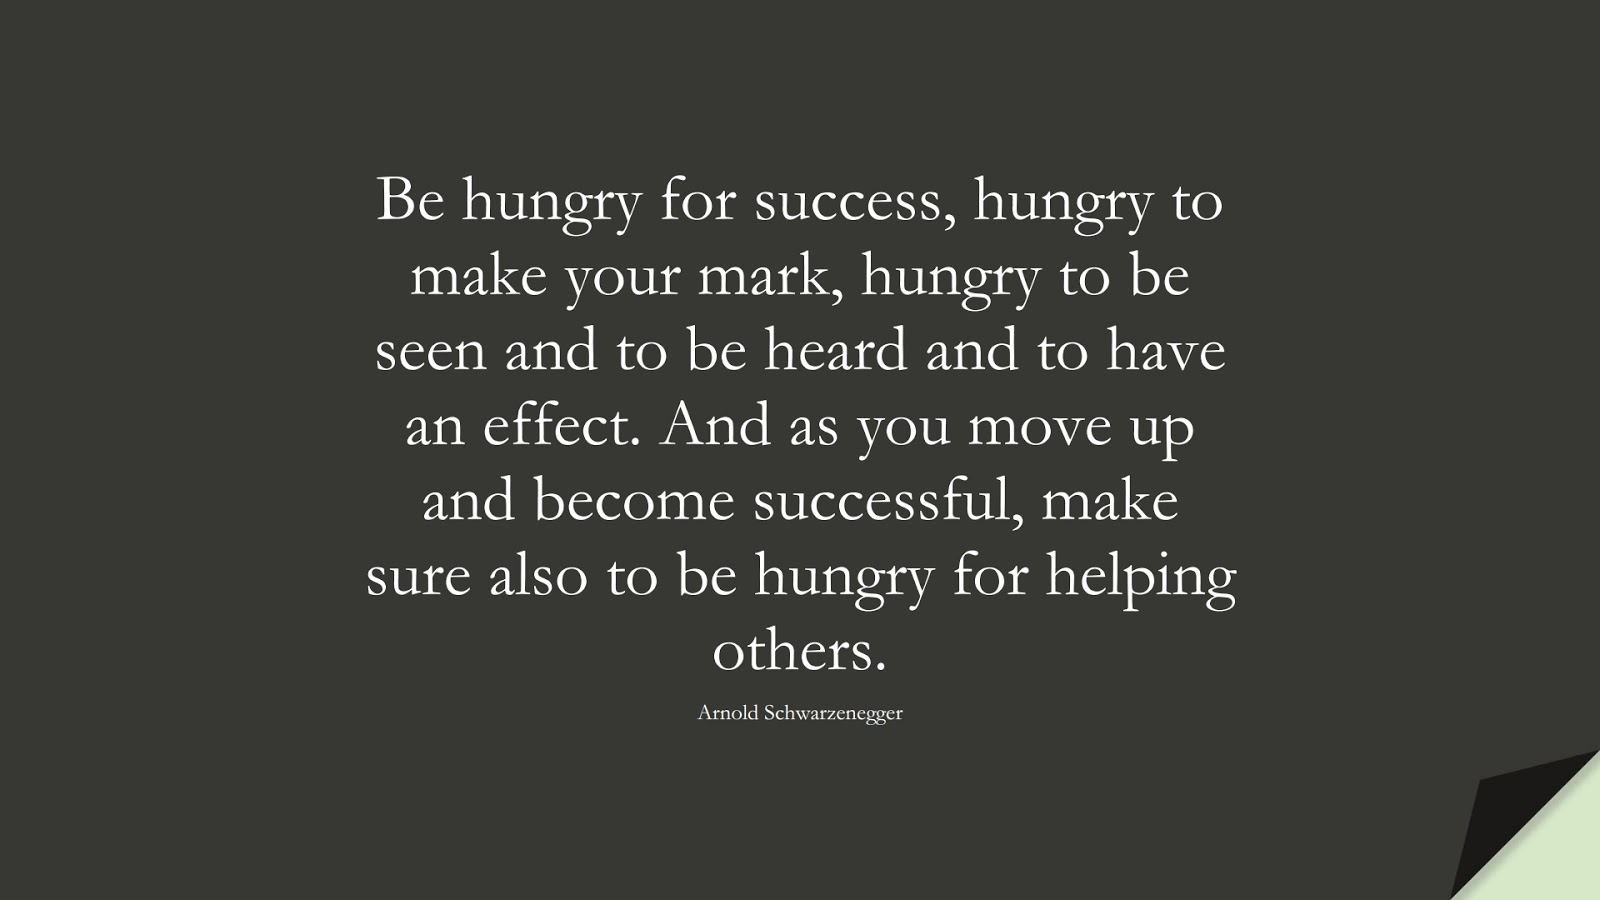 Be hungry for success, hungry to make your mark, hungry to be seen and to be heard and to have an effect. And as you move up and become successful, make sure also to be hungry for helping others. (Arnold Schwarzenegger);  #SuccessQuotes